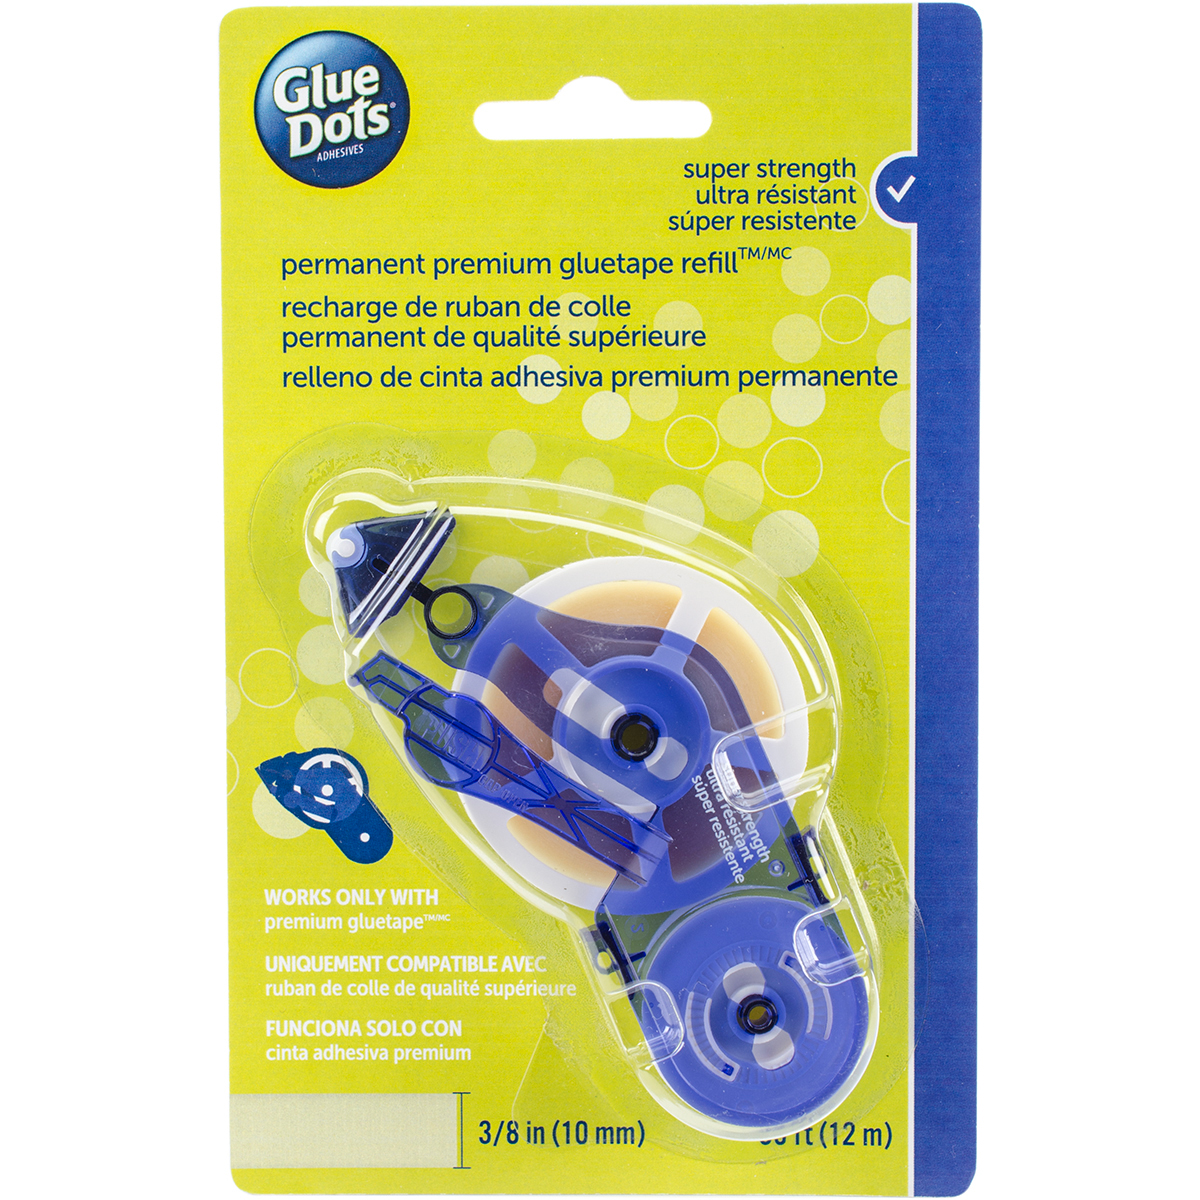 Glue Dots Tape Refill-Permanent .375X39' For 41901 Runner